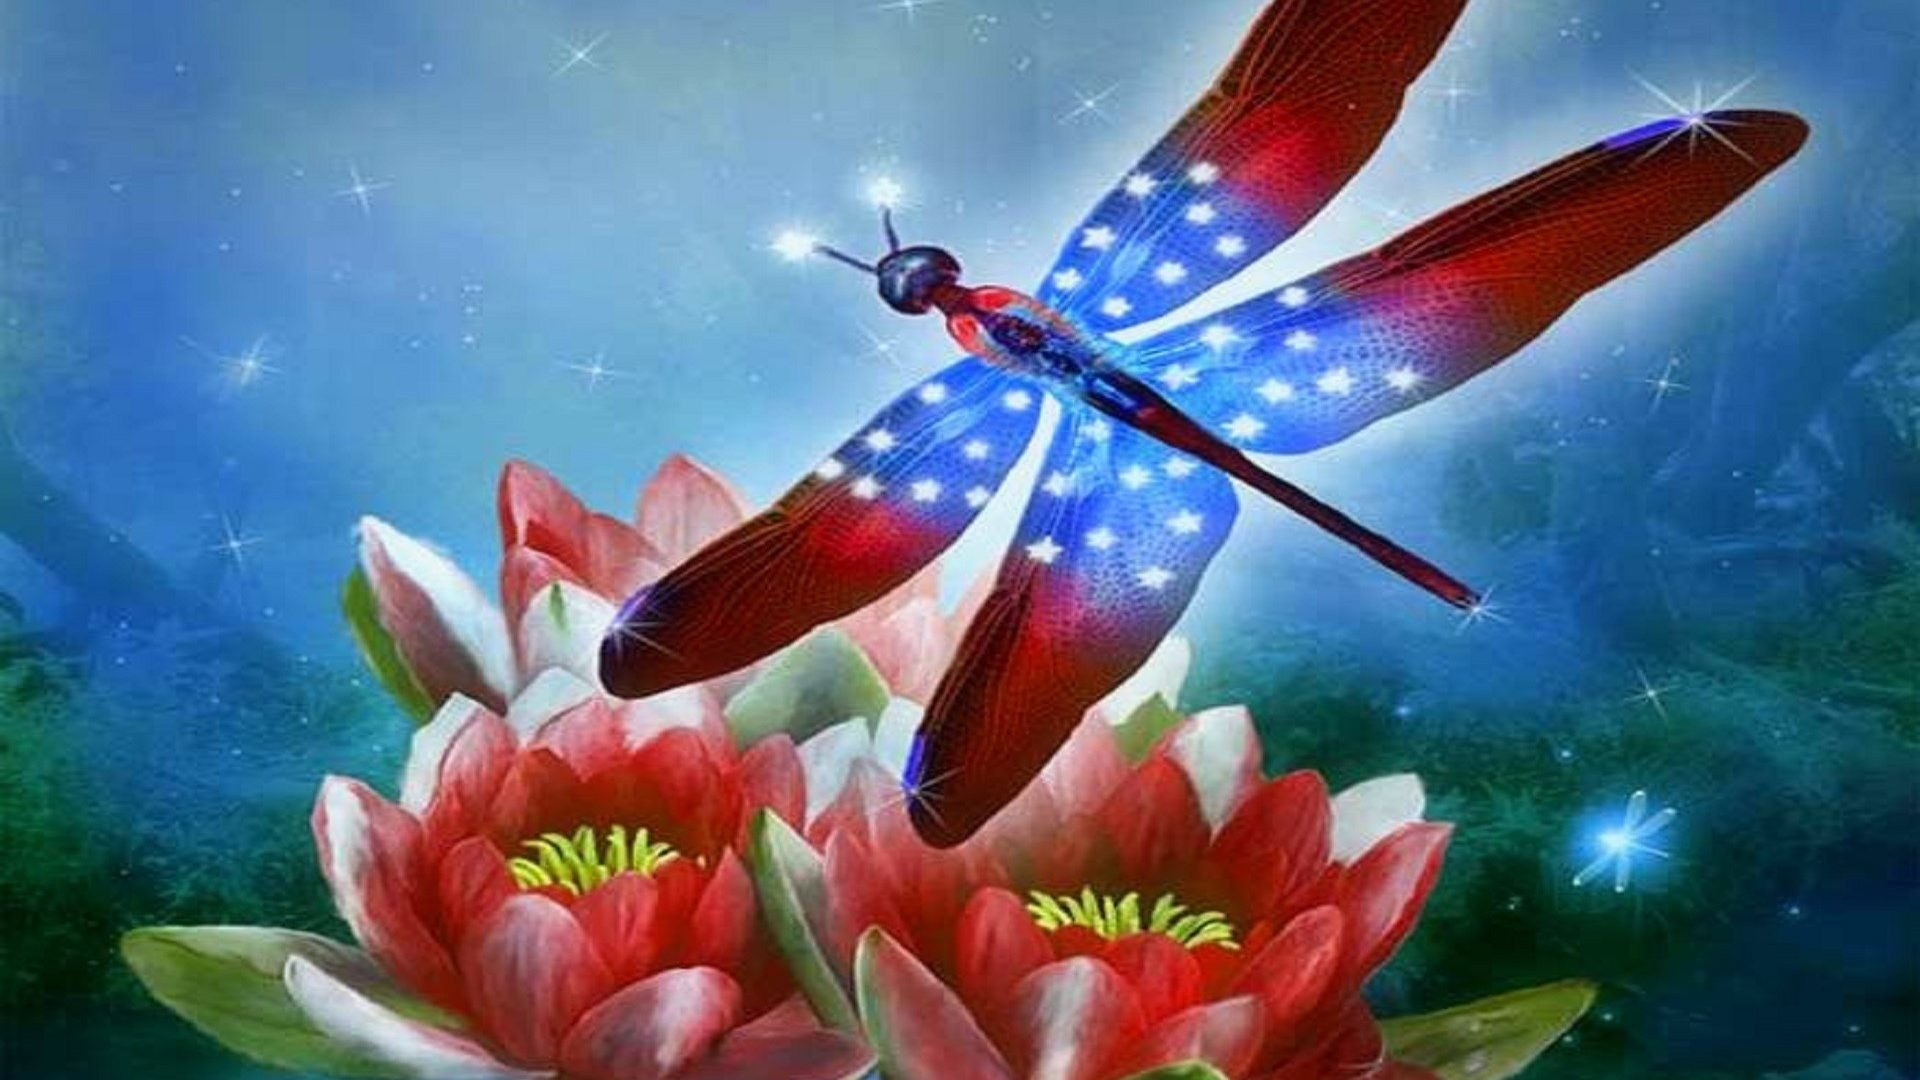 1920x1080 October 5, 2016 - Dragonfly Flowers Attractions Sparkle Art Four Creative  Pre Brilliant Lovely Valentines